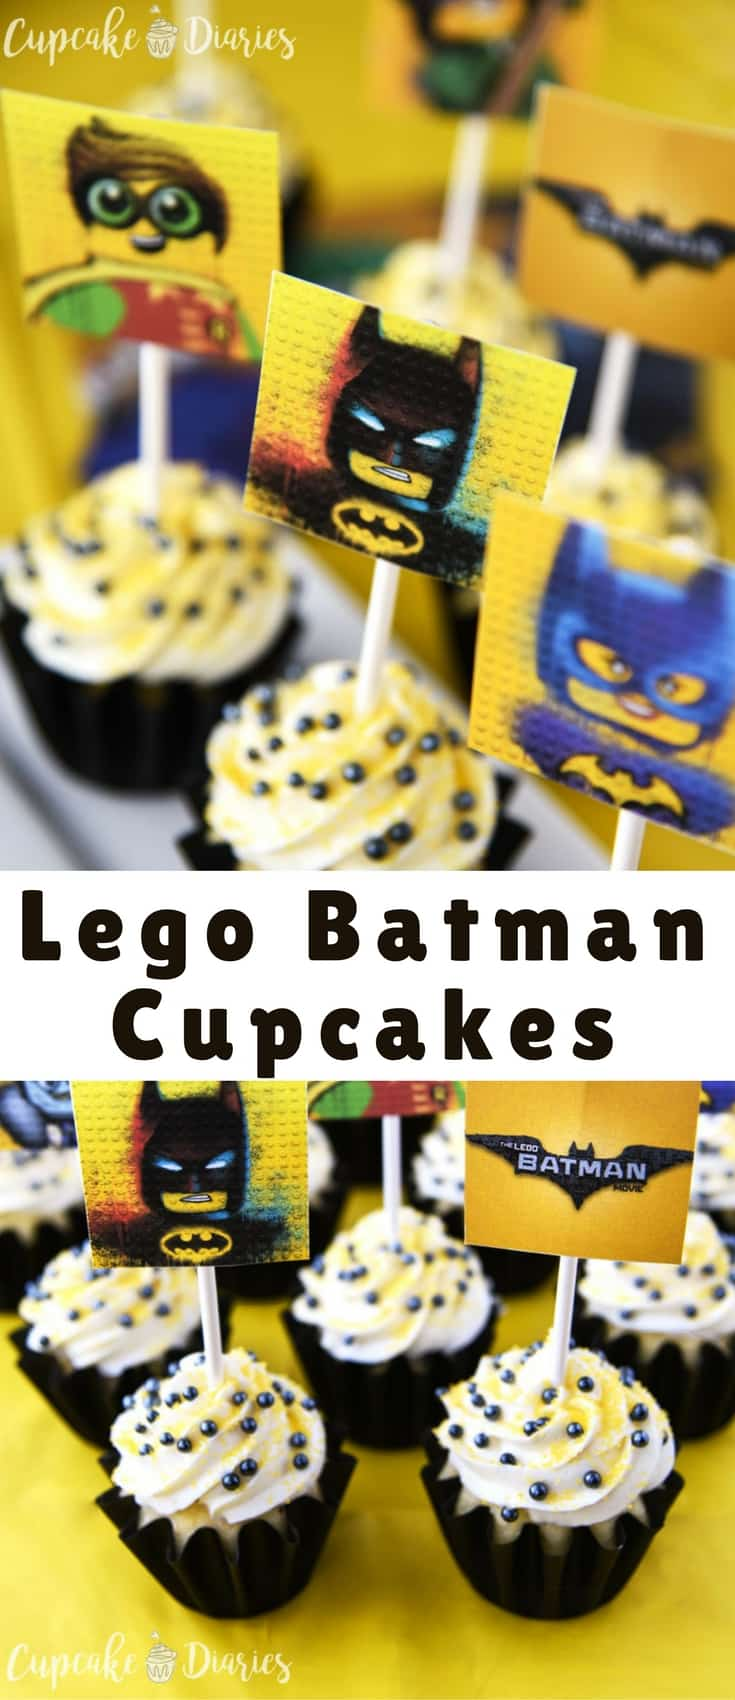 graphic regarding Batman Cupcake Toppers Printable identify Lego Batman Cupcakes with Totally free Printable Toppers - Blogger Bests